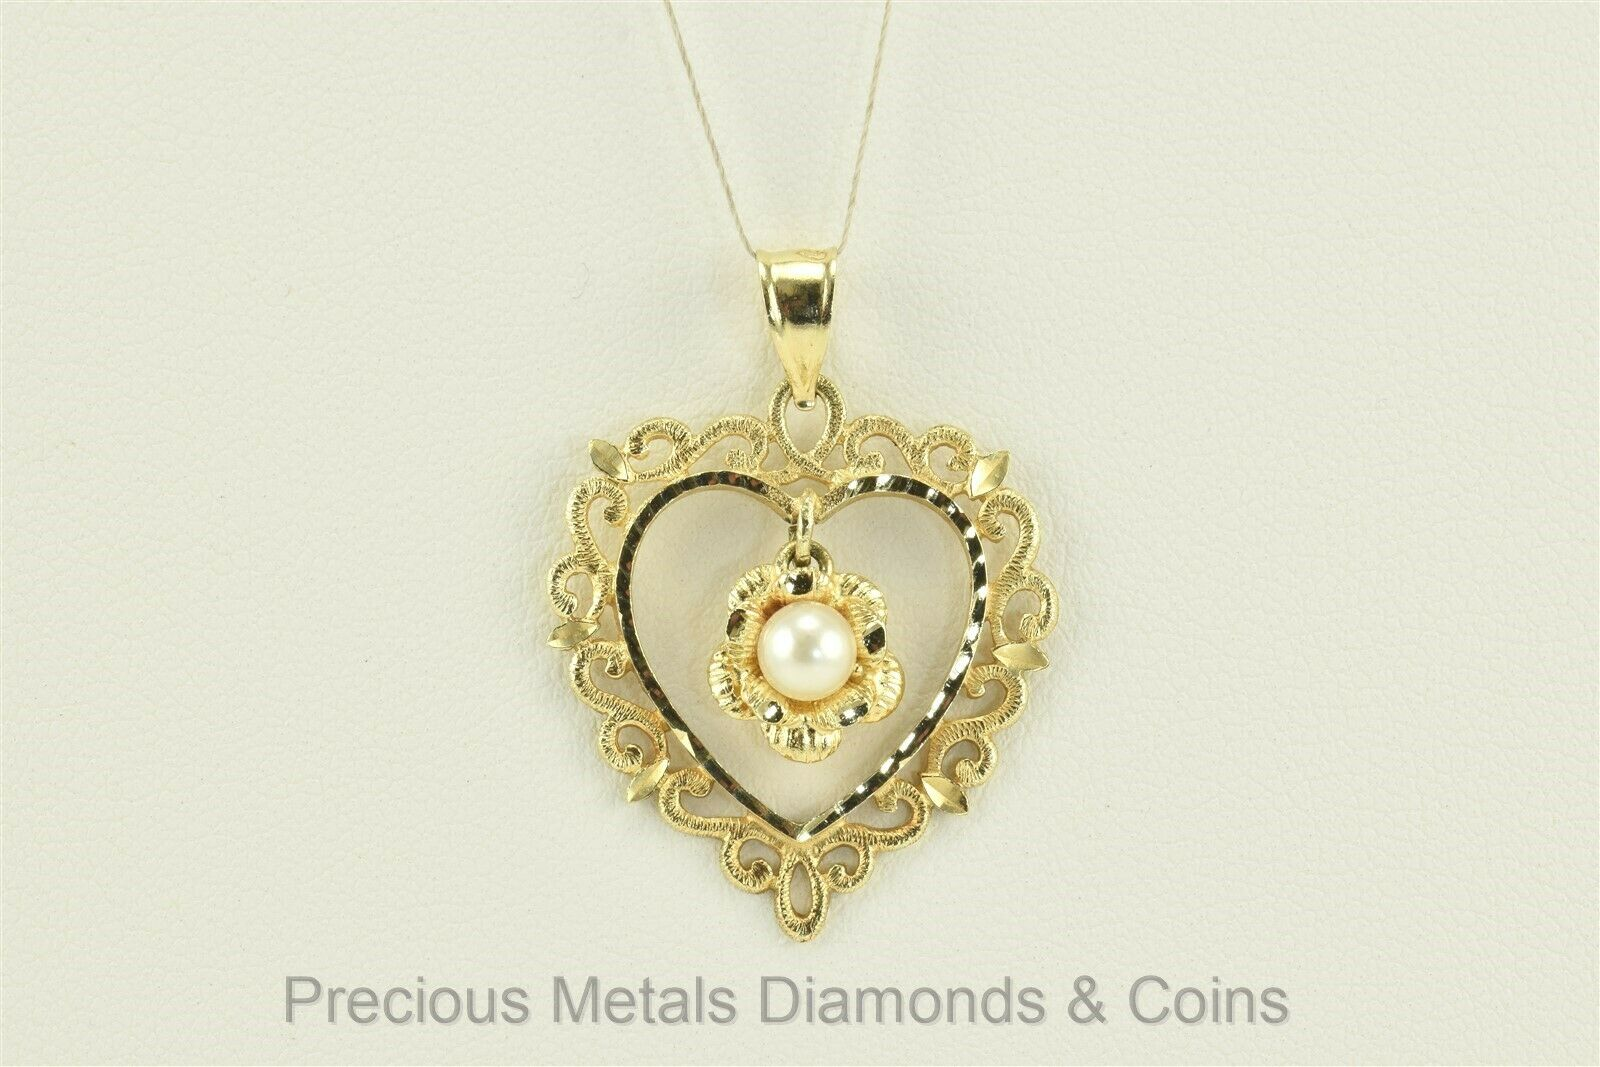 14k Yellow gold 25mm x 22mm Dangling 4mm Pearl Scrolled Heart Pendant